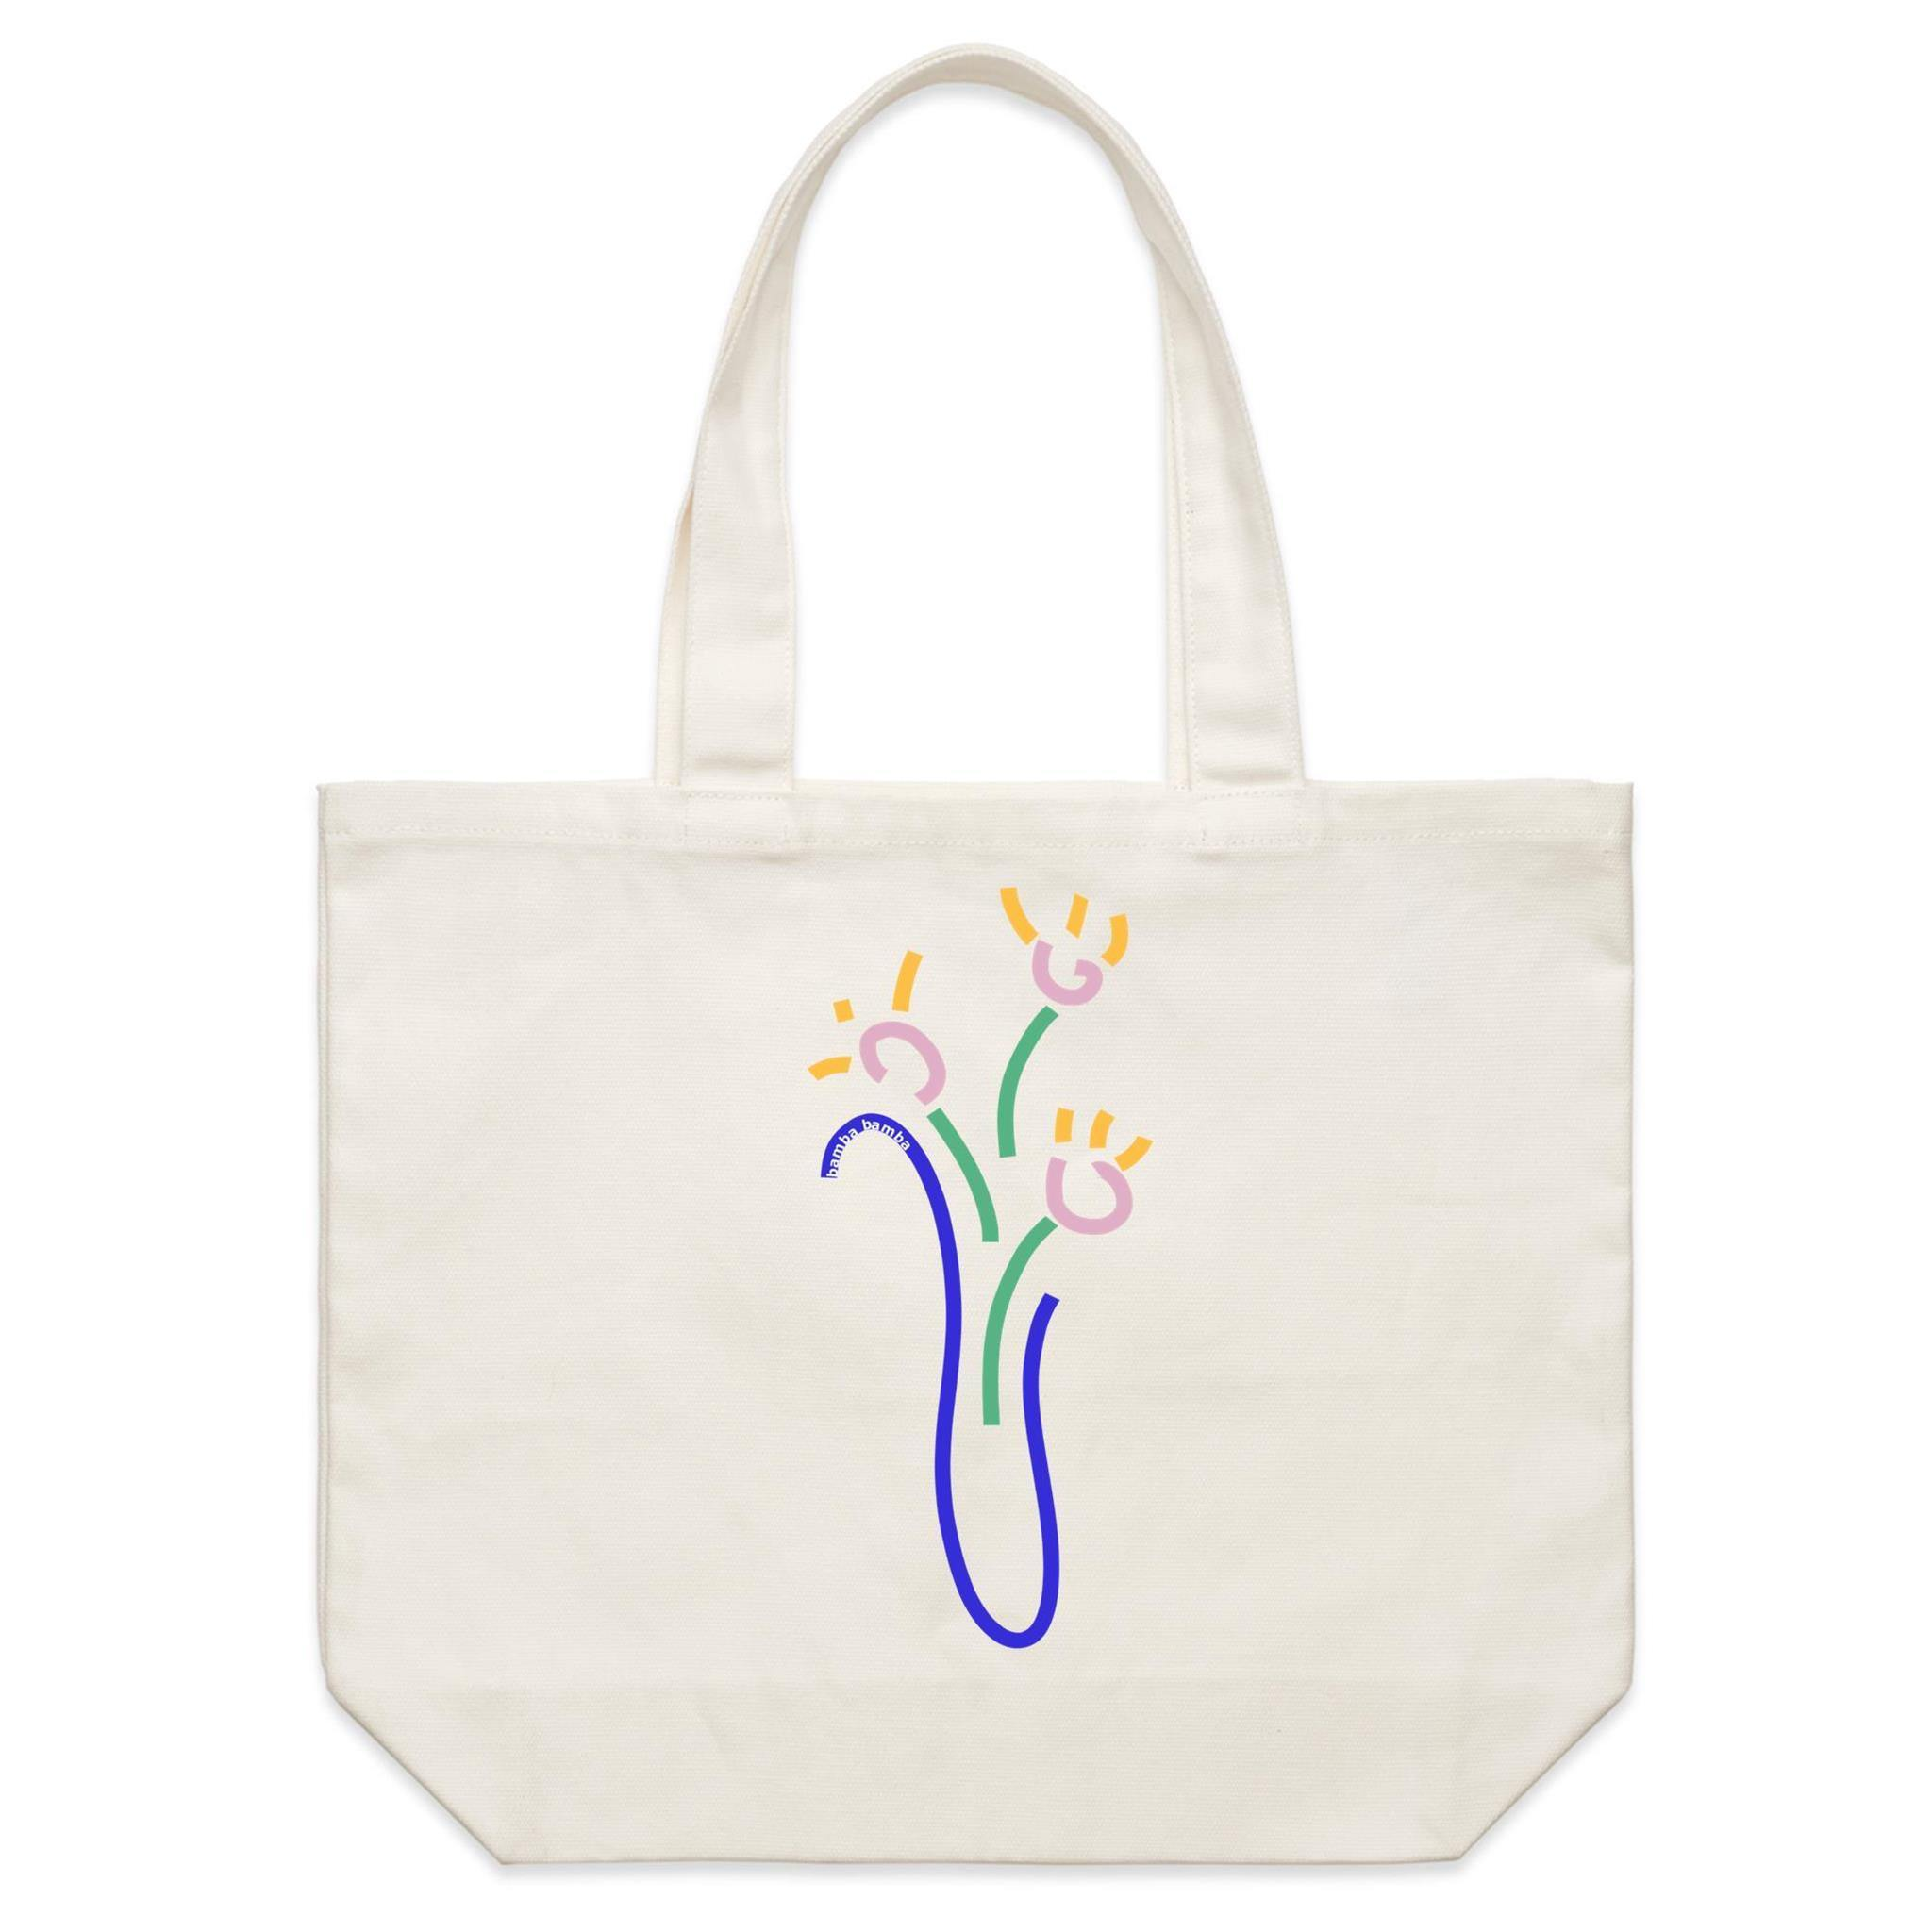 Florero Canvas Tote Bag - Bamba Bamba Collective